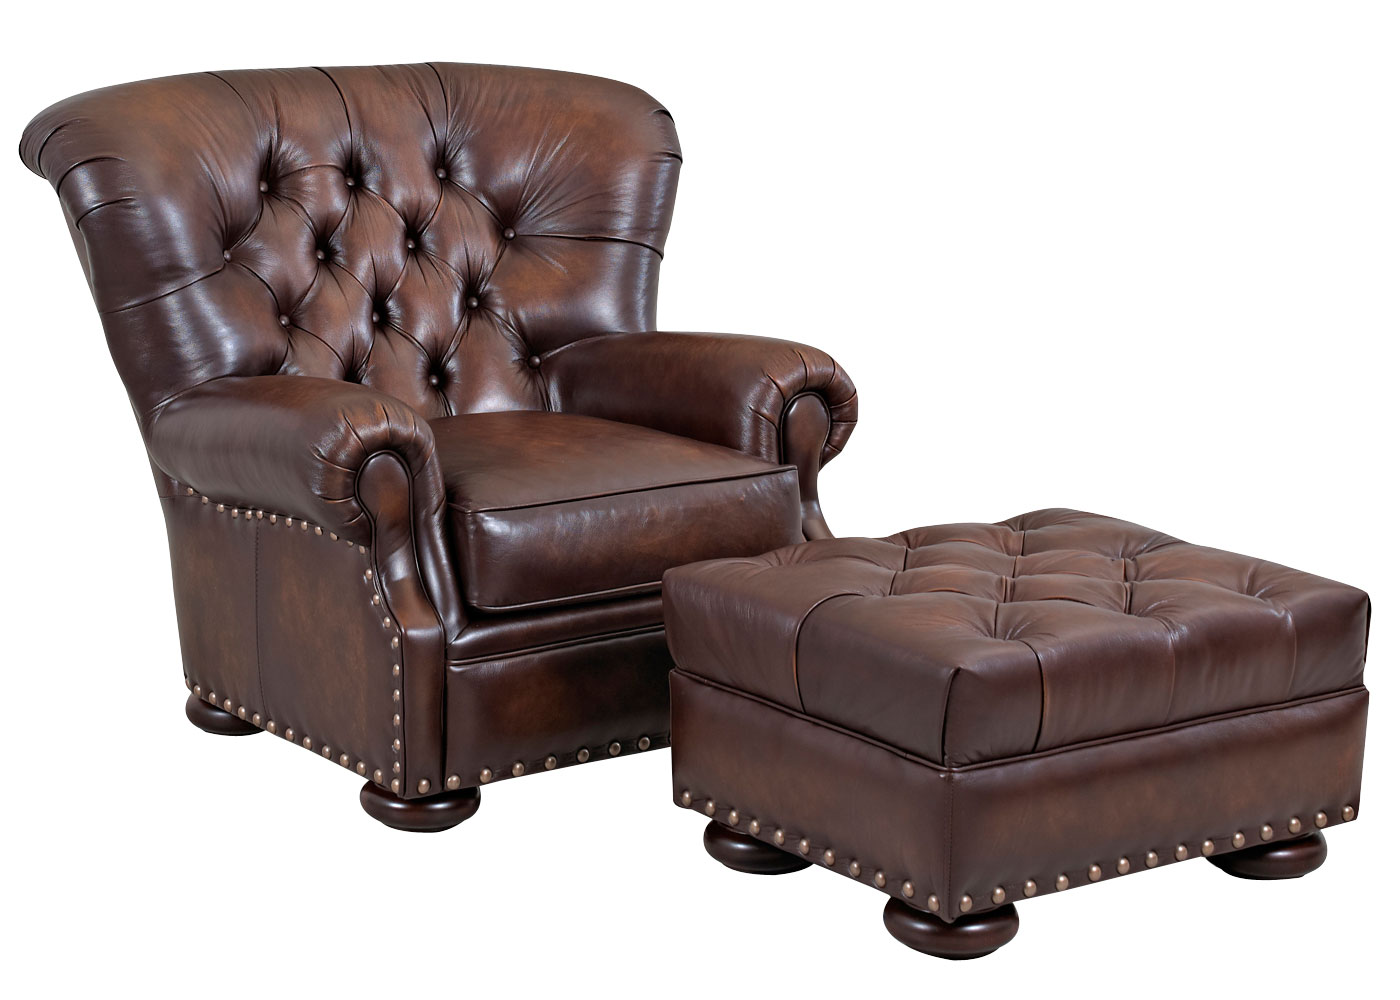 Tufted Back Leather Club Chair